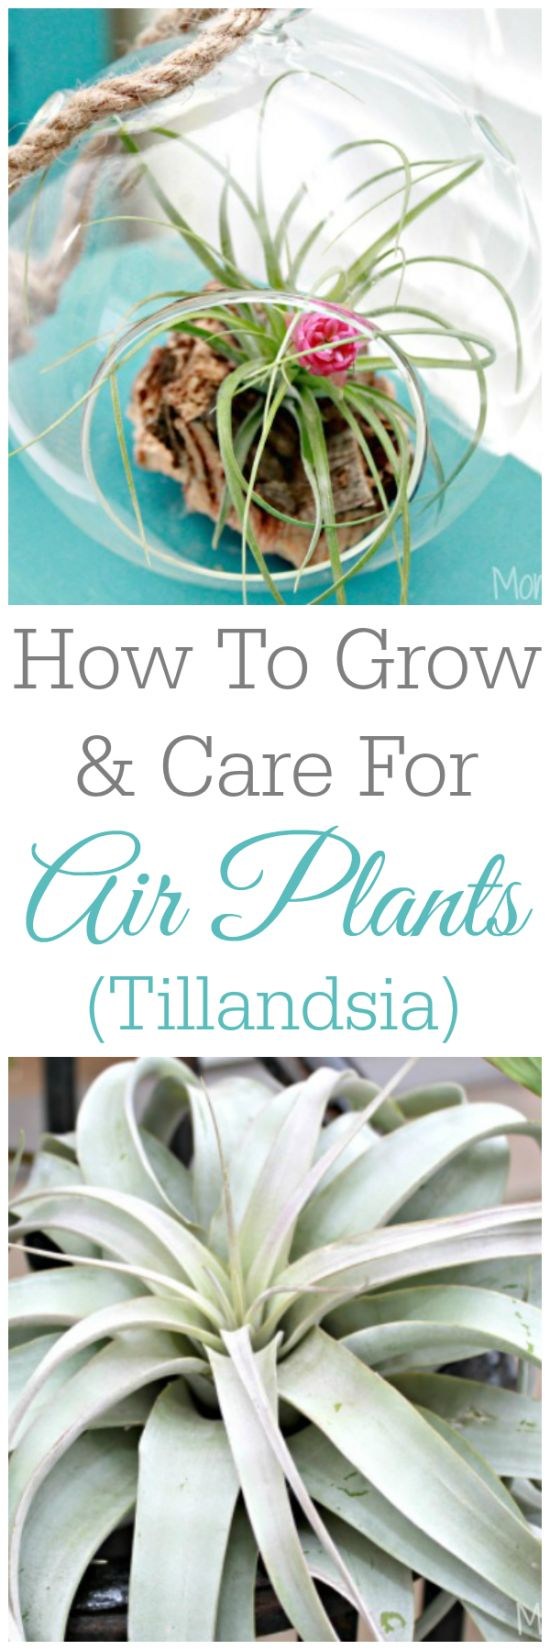 how to grow and care for air plants tillandsia air plants and plants. Black Bedroom Furniture Sets. Home Design Ideas